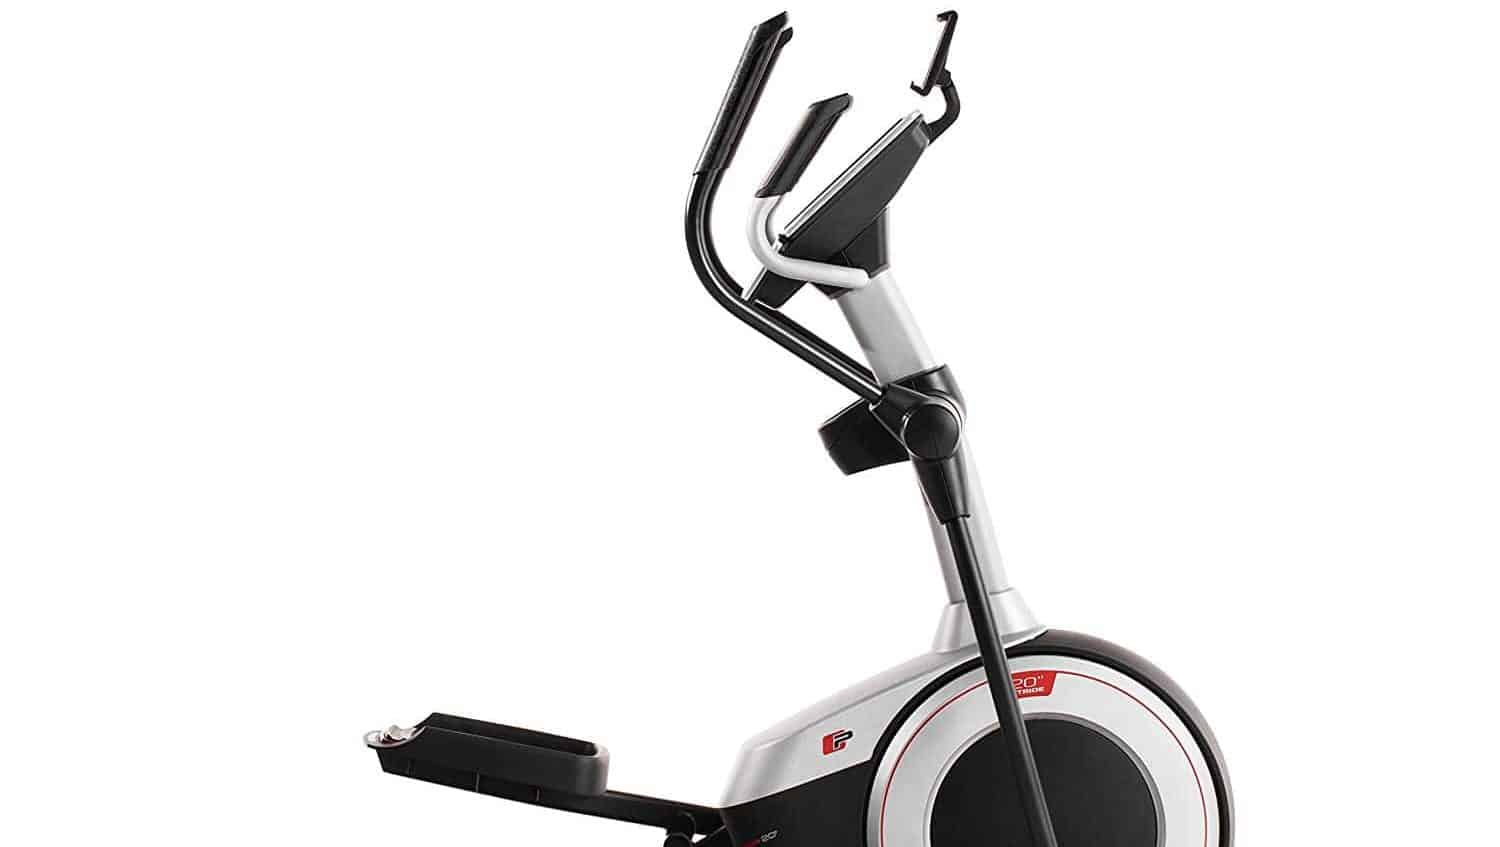 ProForm Endurance 520 E Elliptical Review